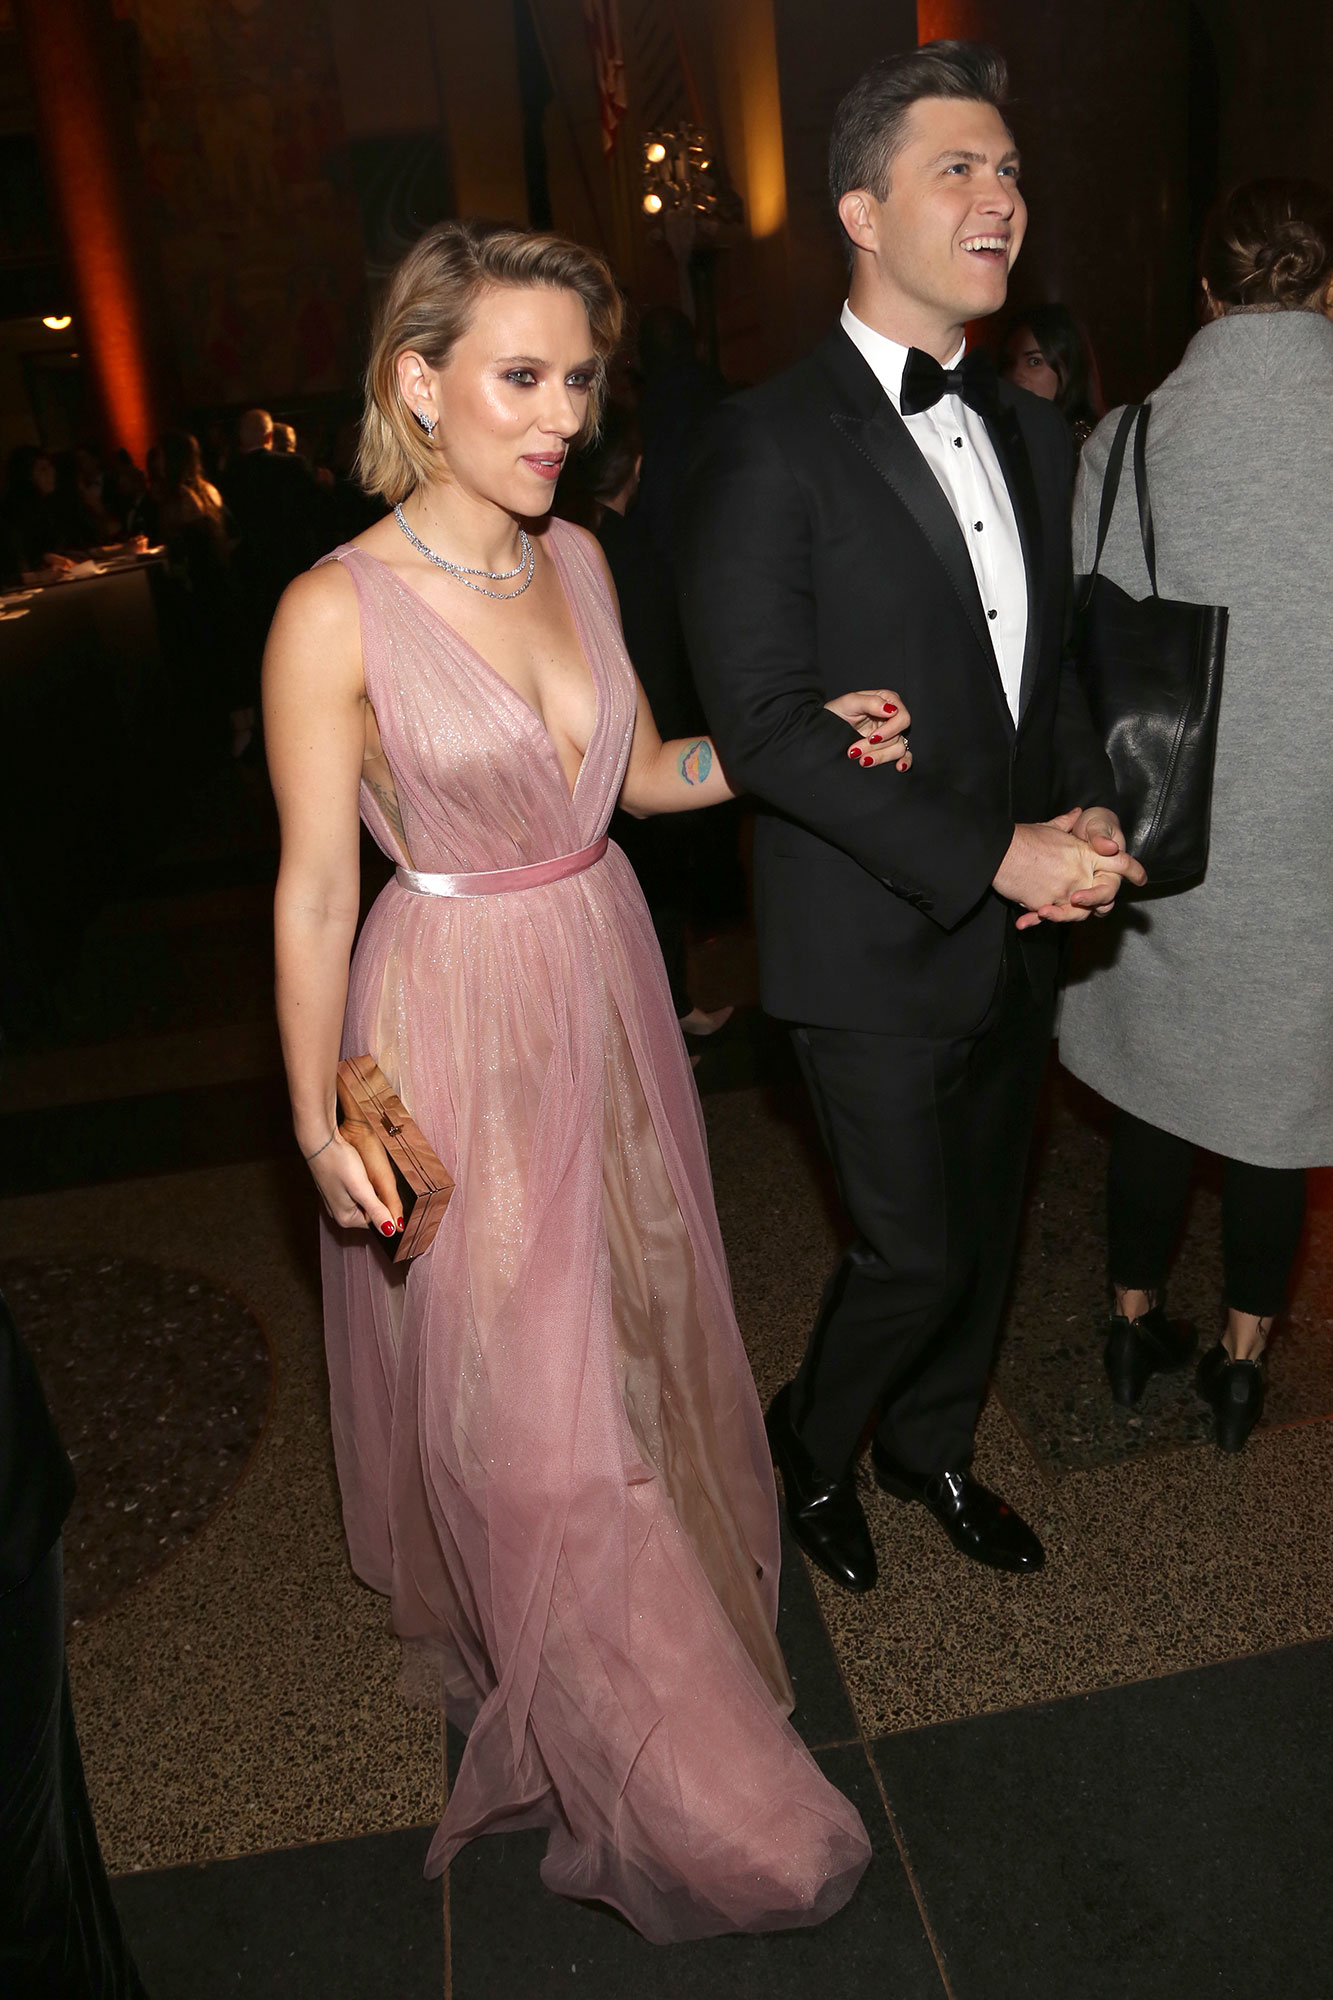 Scarlett Johansson and Colin Jost Relationship Timeline American Museum Of Natural History - The pair sparked dating rumors after they were spotted making out at a NYC bar.